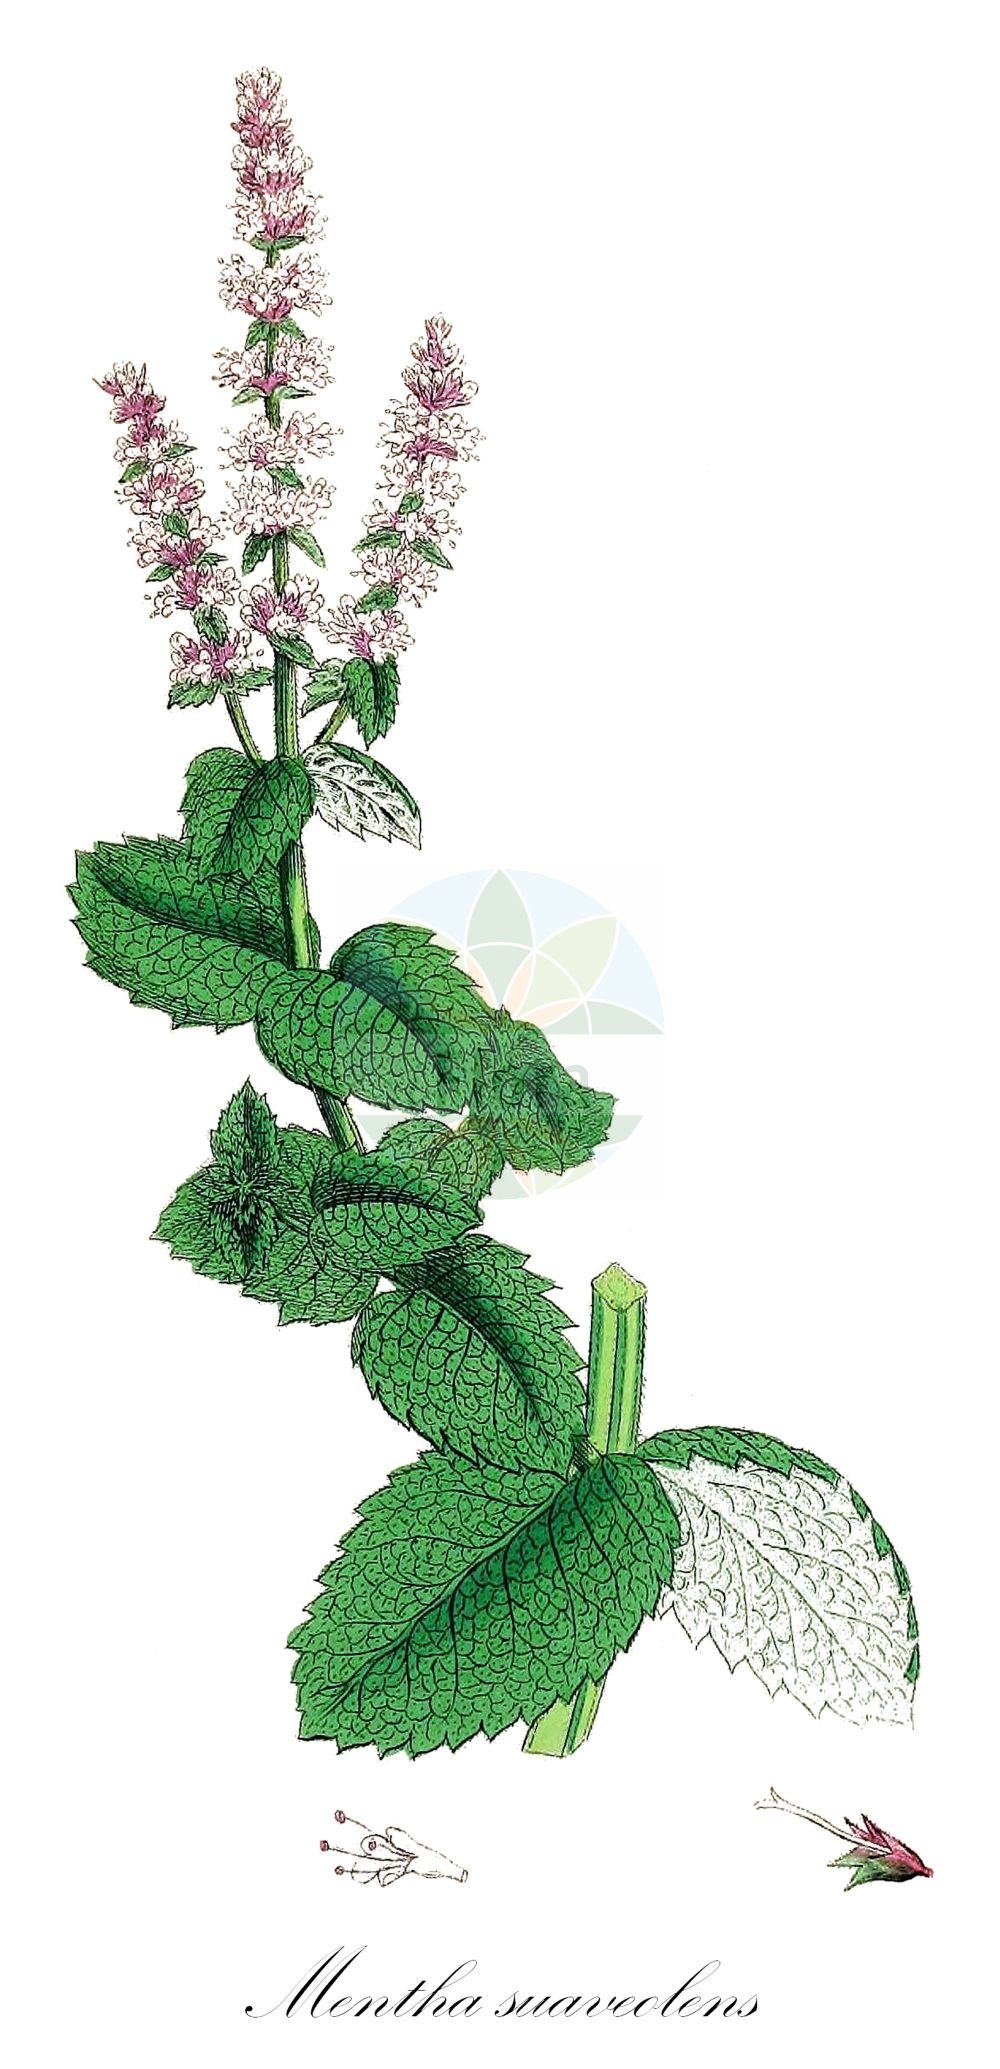 Historische Abbildung von Mentha suaveolens (Rundblaettrige Minze - Round-leaved Mint). Das Bild zeigt Blatt, Bluete, Frucht und Same. ---- Historical Drawing of Mentha suaveolens (Rundblaettrige Minze - Round-leaved Mint).The image is showing leaf, flower, fruit and seed.(Mentha suaveolens,Rundblaettrige Minze,Round-leaved Mint,Duft-Minze,Rundblatt-Minze,Apple Mint,Apple-scented Mint,Horse Mint,Mentha,Minze,Mint,Lamiaceae,Lippenbluetengewaechse;Lippenbluetler,Nettle family,Blatt,Bluete,Frucht,Same,leaf,flower,fruit,seed,Sowerby (1790-1813))